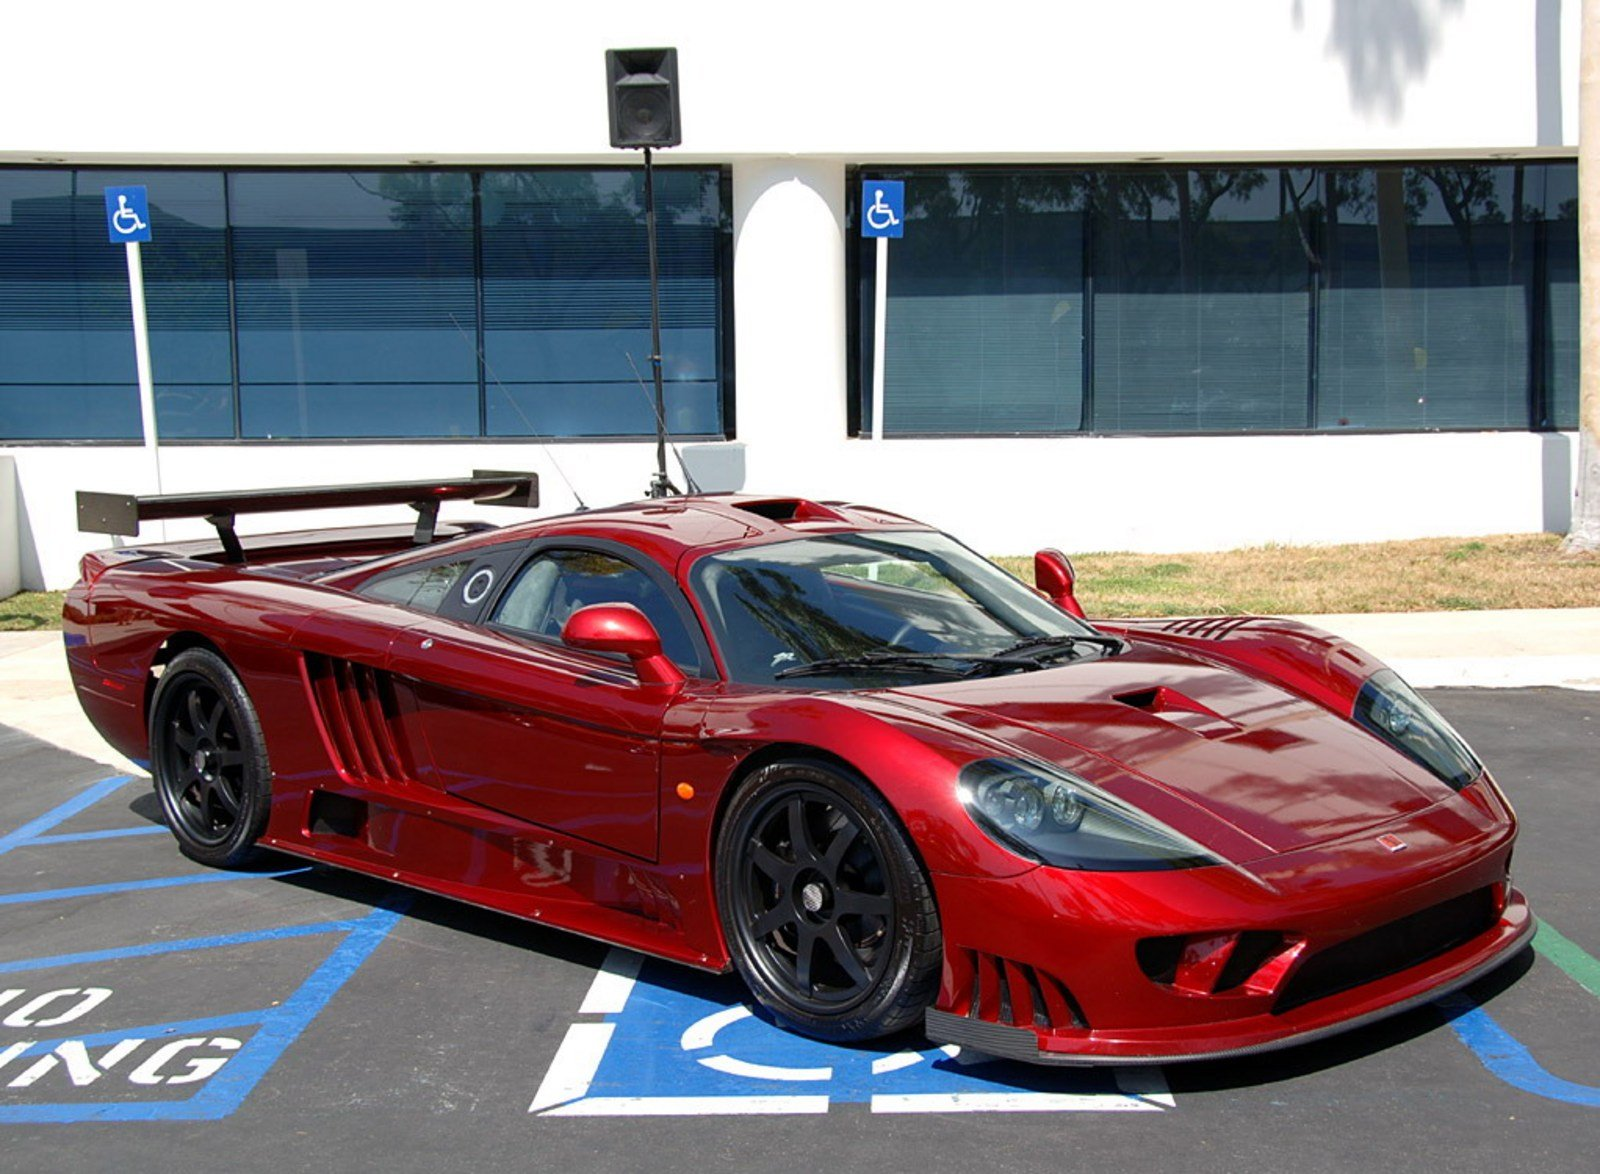 Saleen S7 News And Reviews | Top Speed